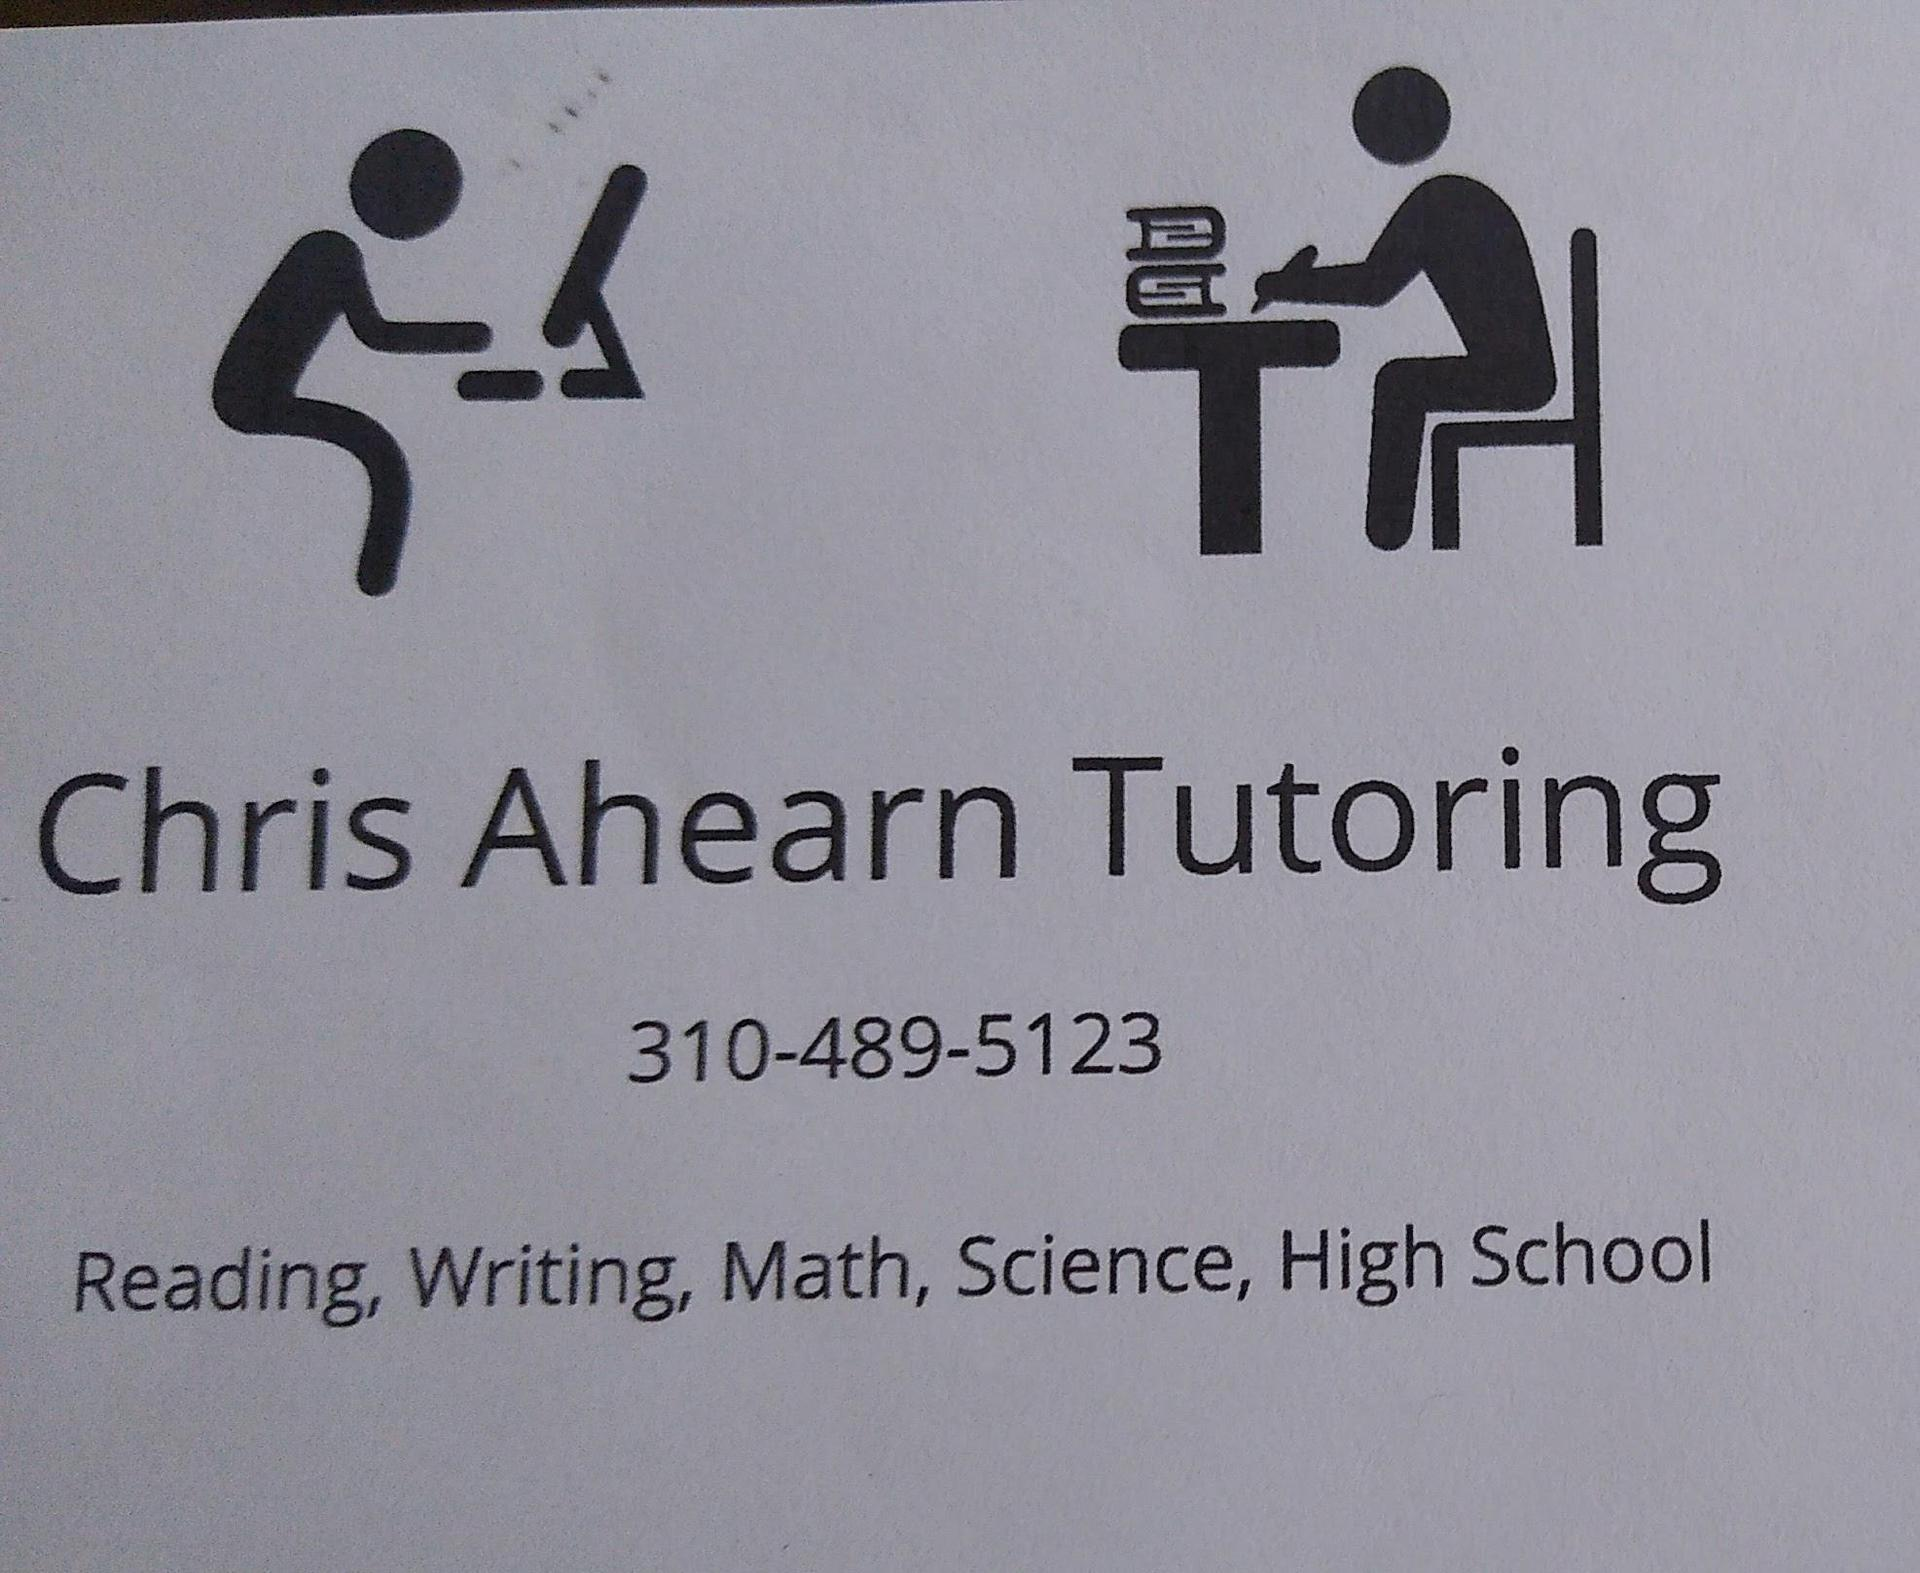 chris ahearn tutoring ad